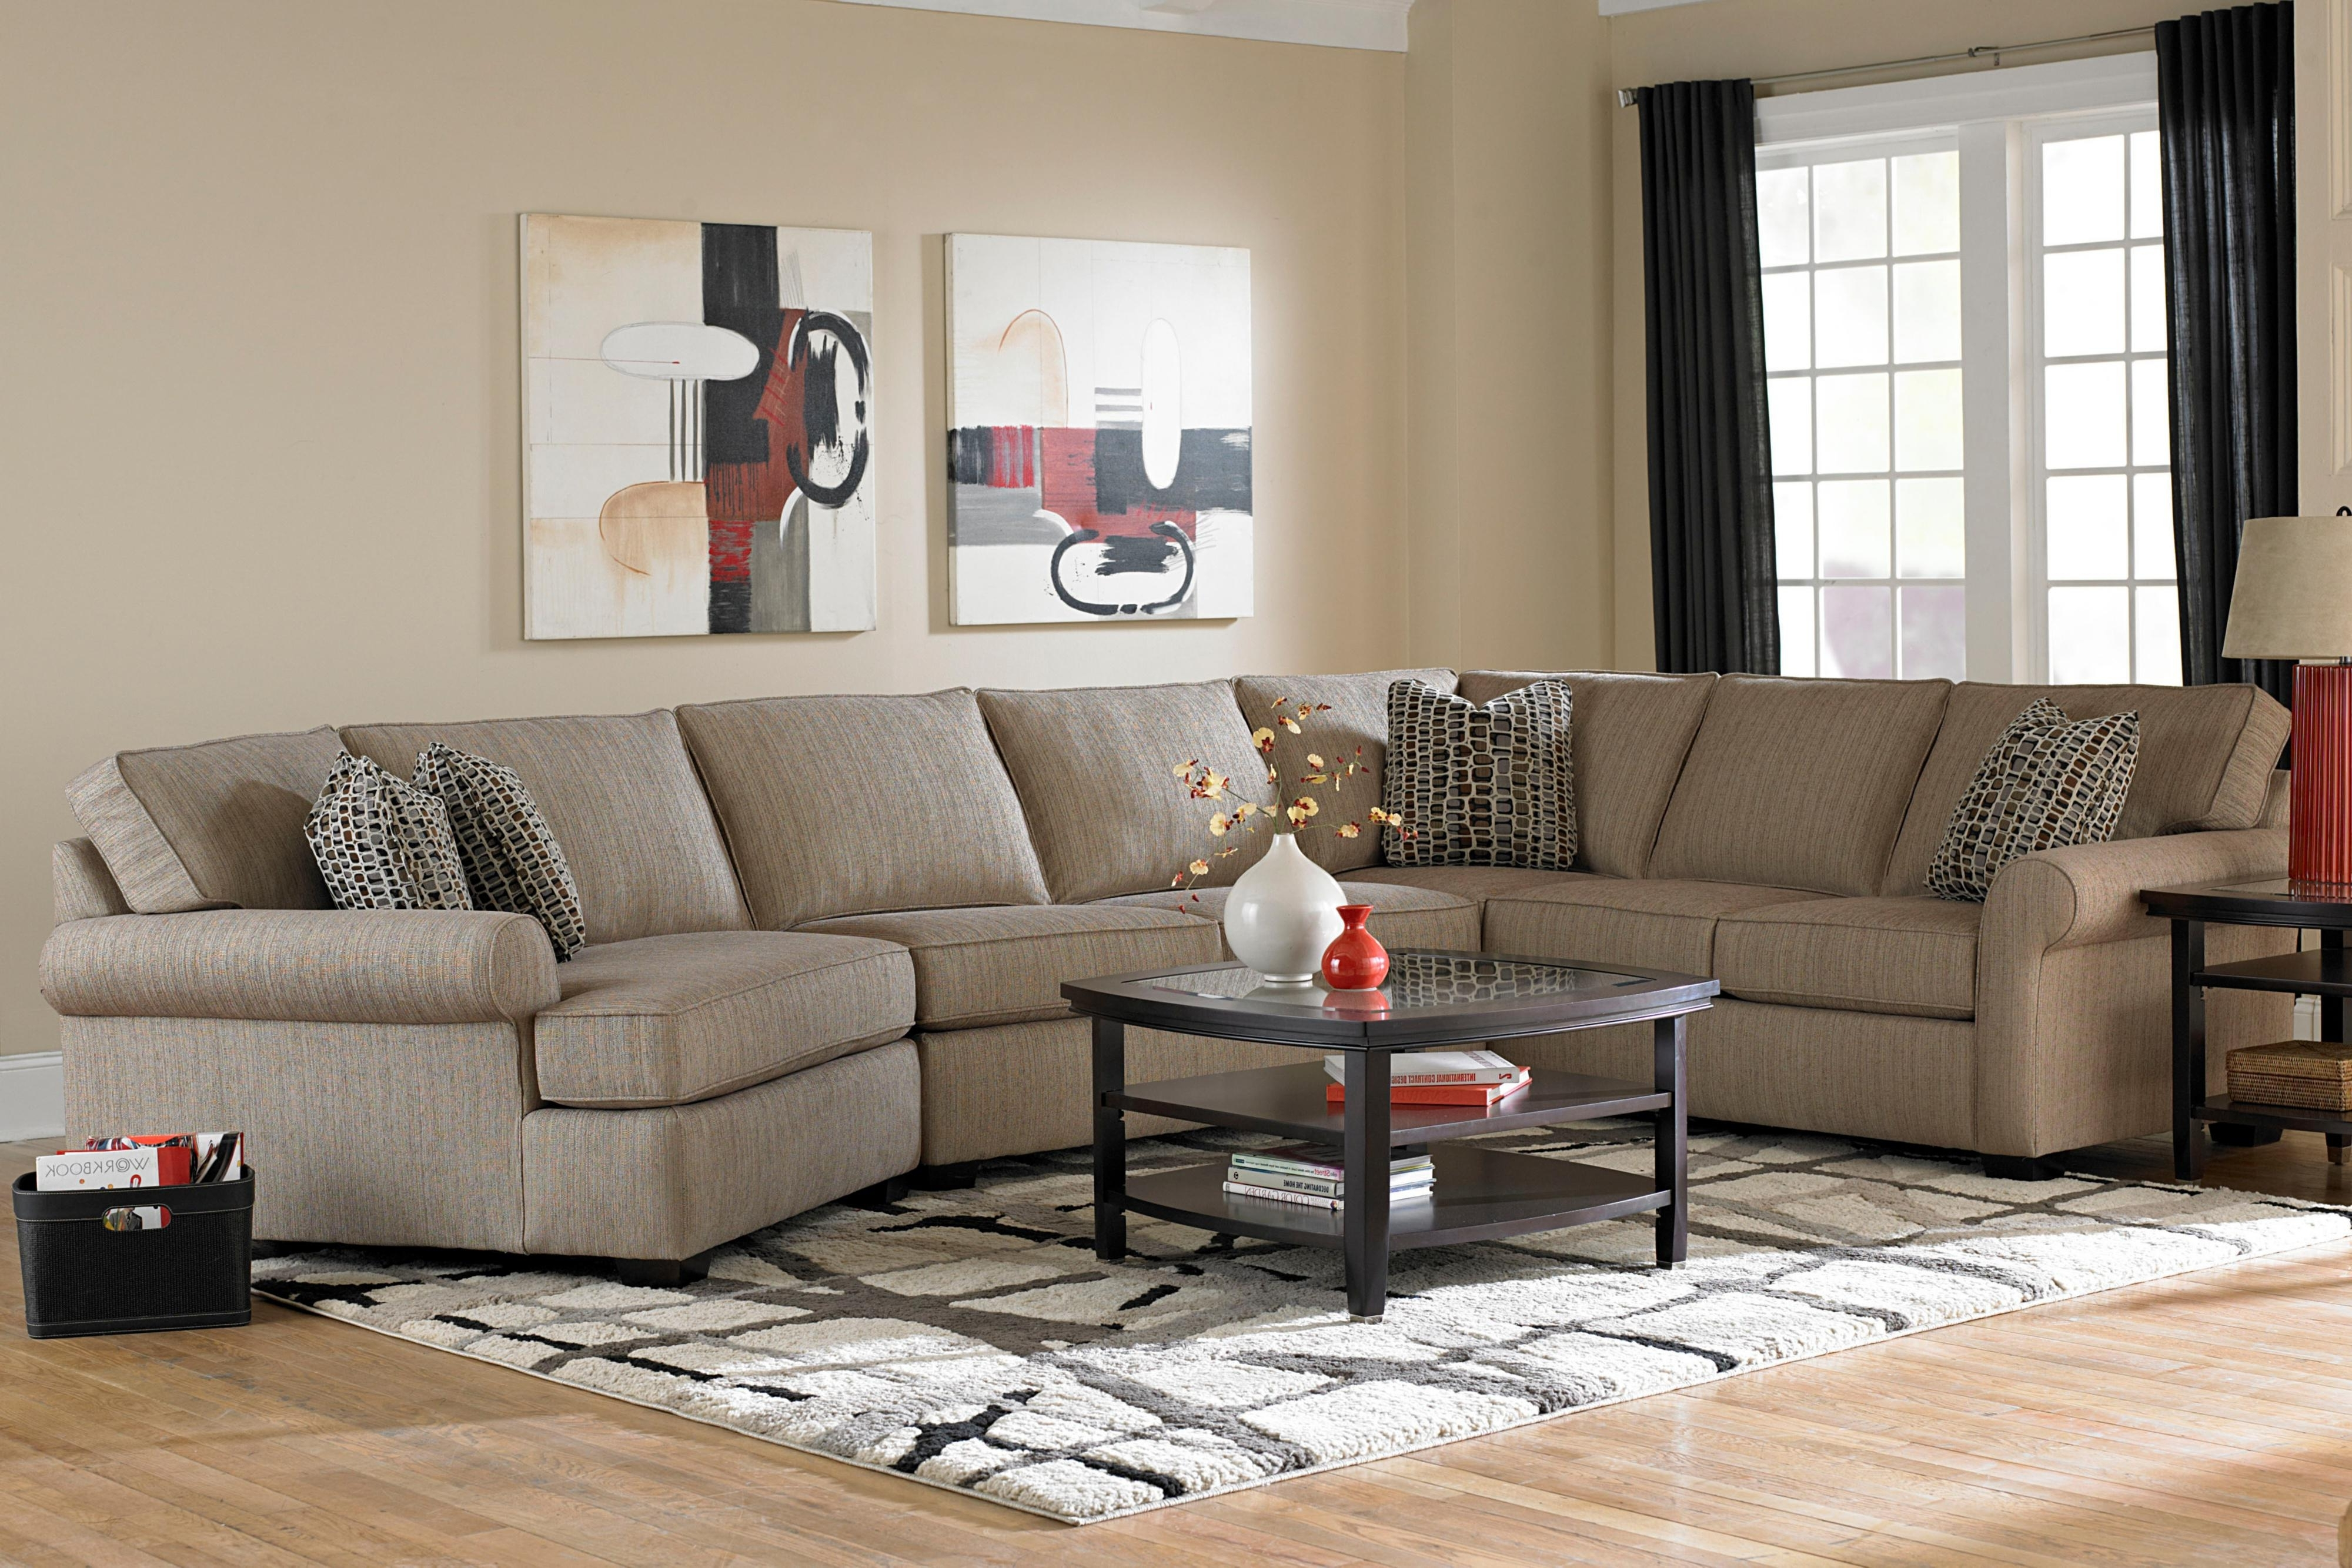 Eau Claire Wi Sectional Sofas With Regard To Best And Newest Broyhill Furniture Ethan Transitional Sectional Sofa With Right (View 20 of 20)